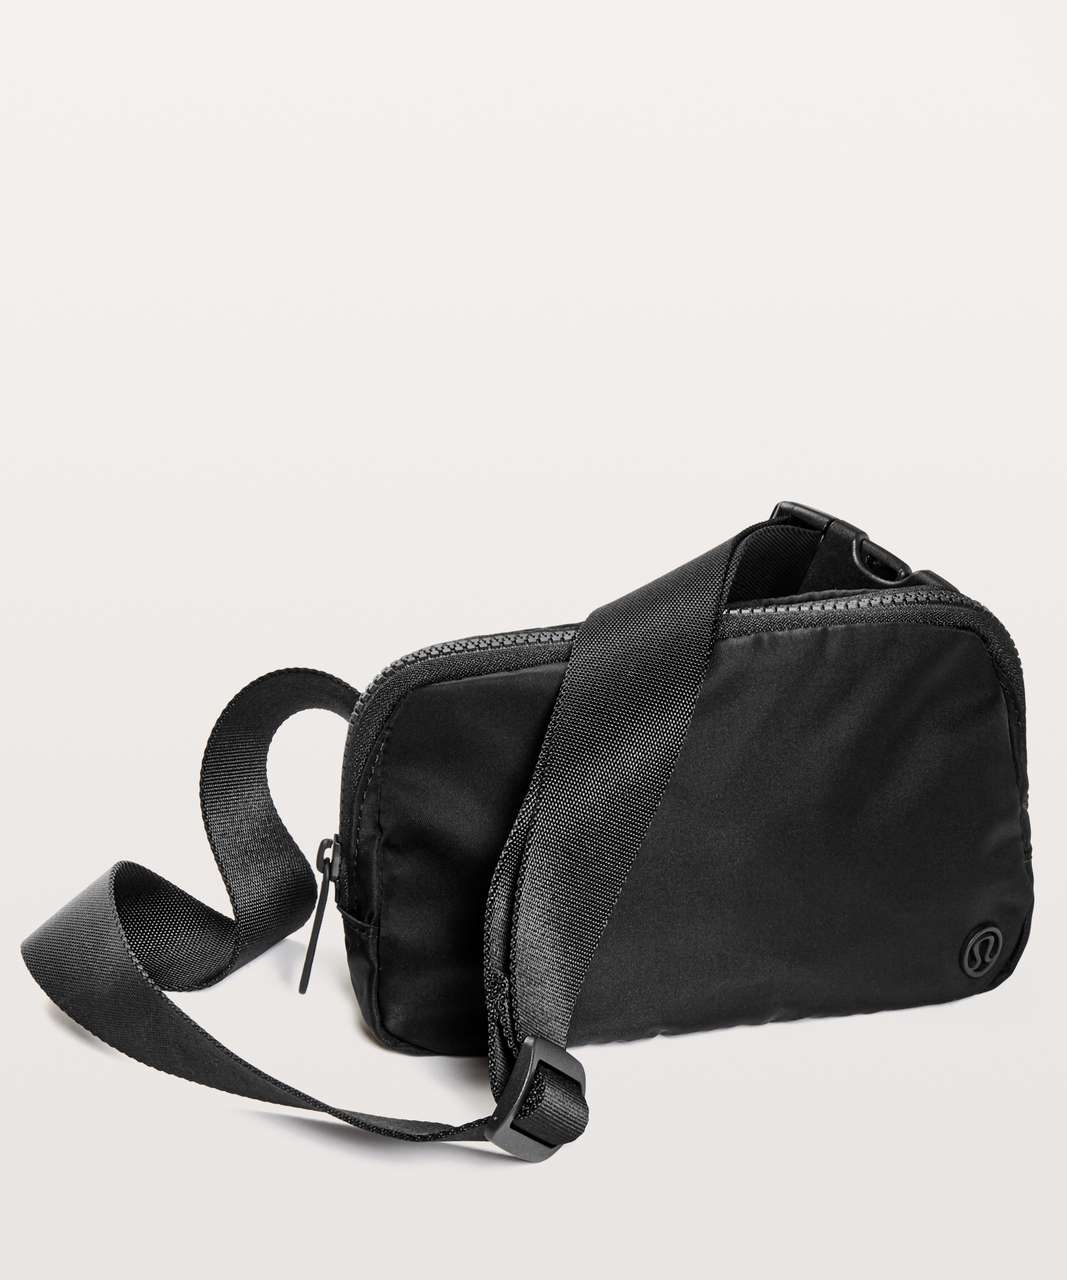 Lululemon Everywhere Belt Bag *1L - Black (First Release